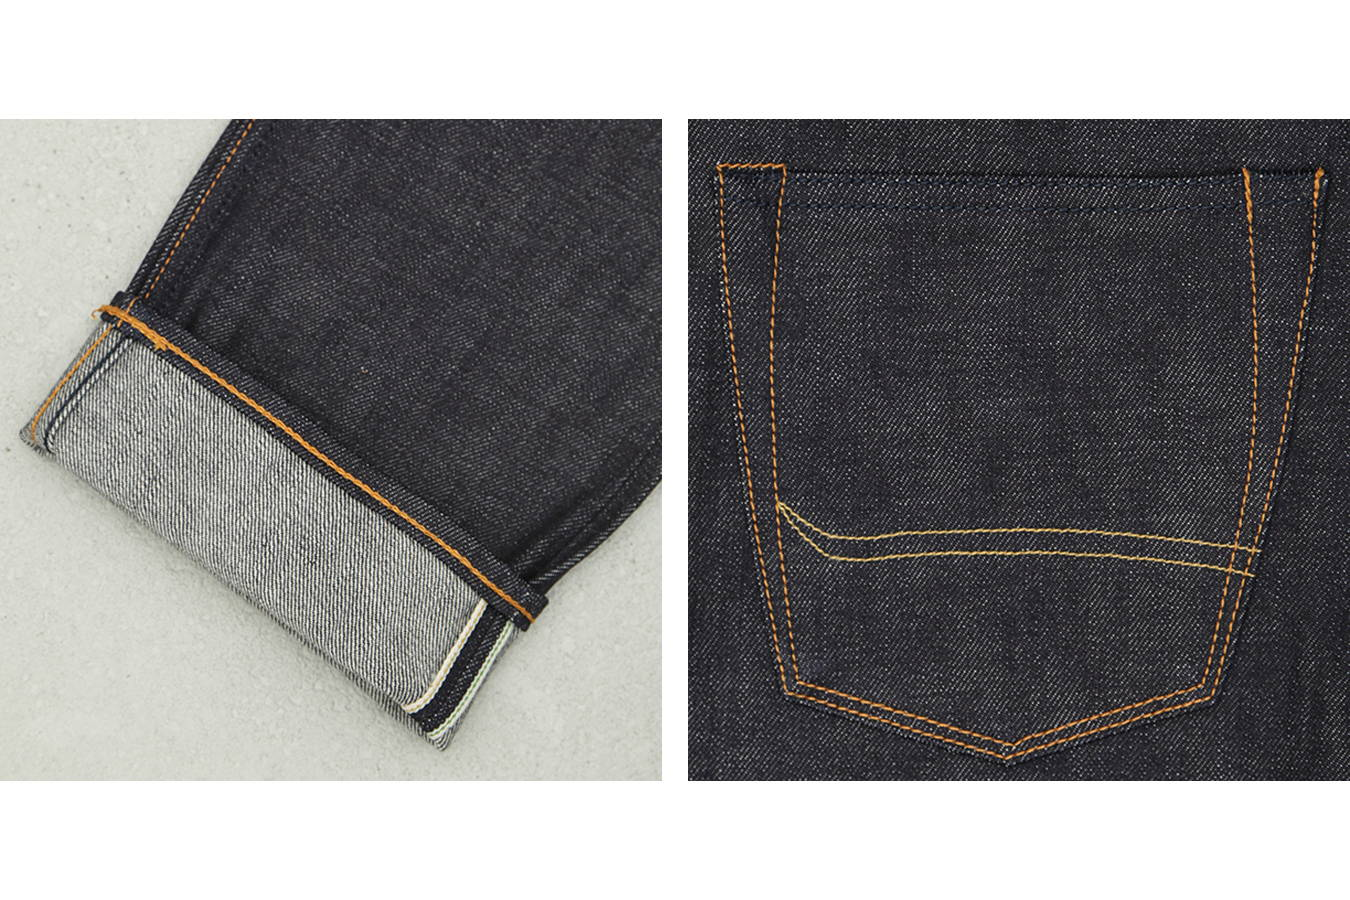 14 oz. Japanese selvedge denim from Collect Mills for men (JP), exclusively developed for BENZAK (special #1)